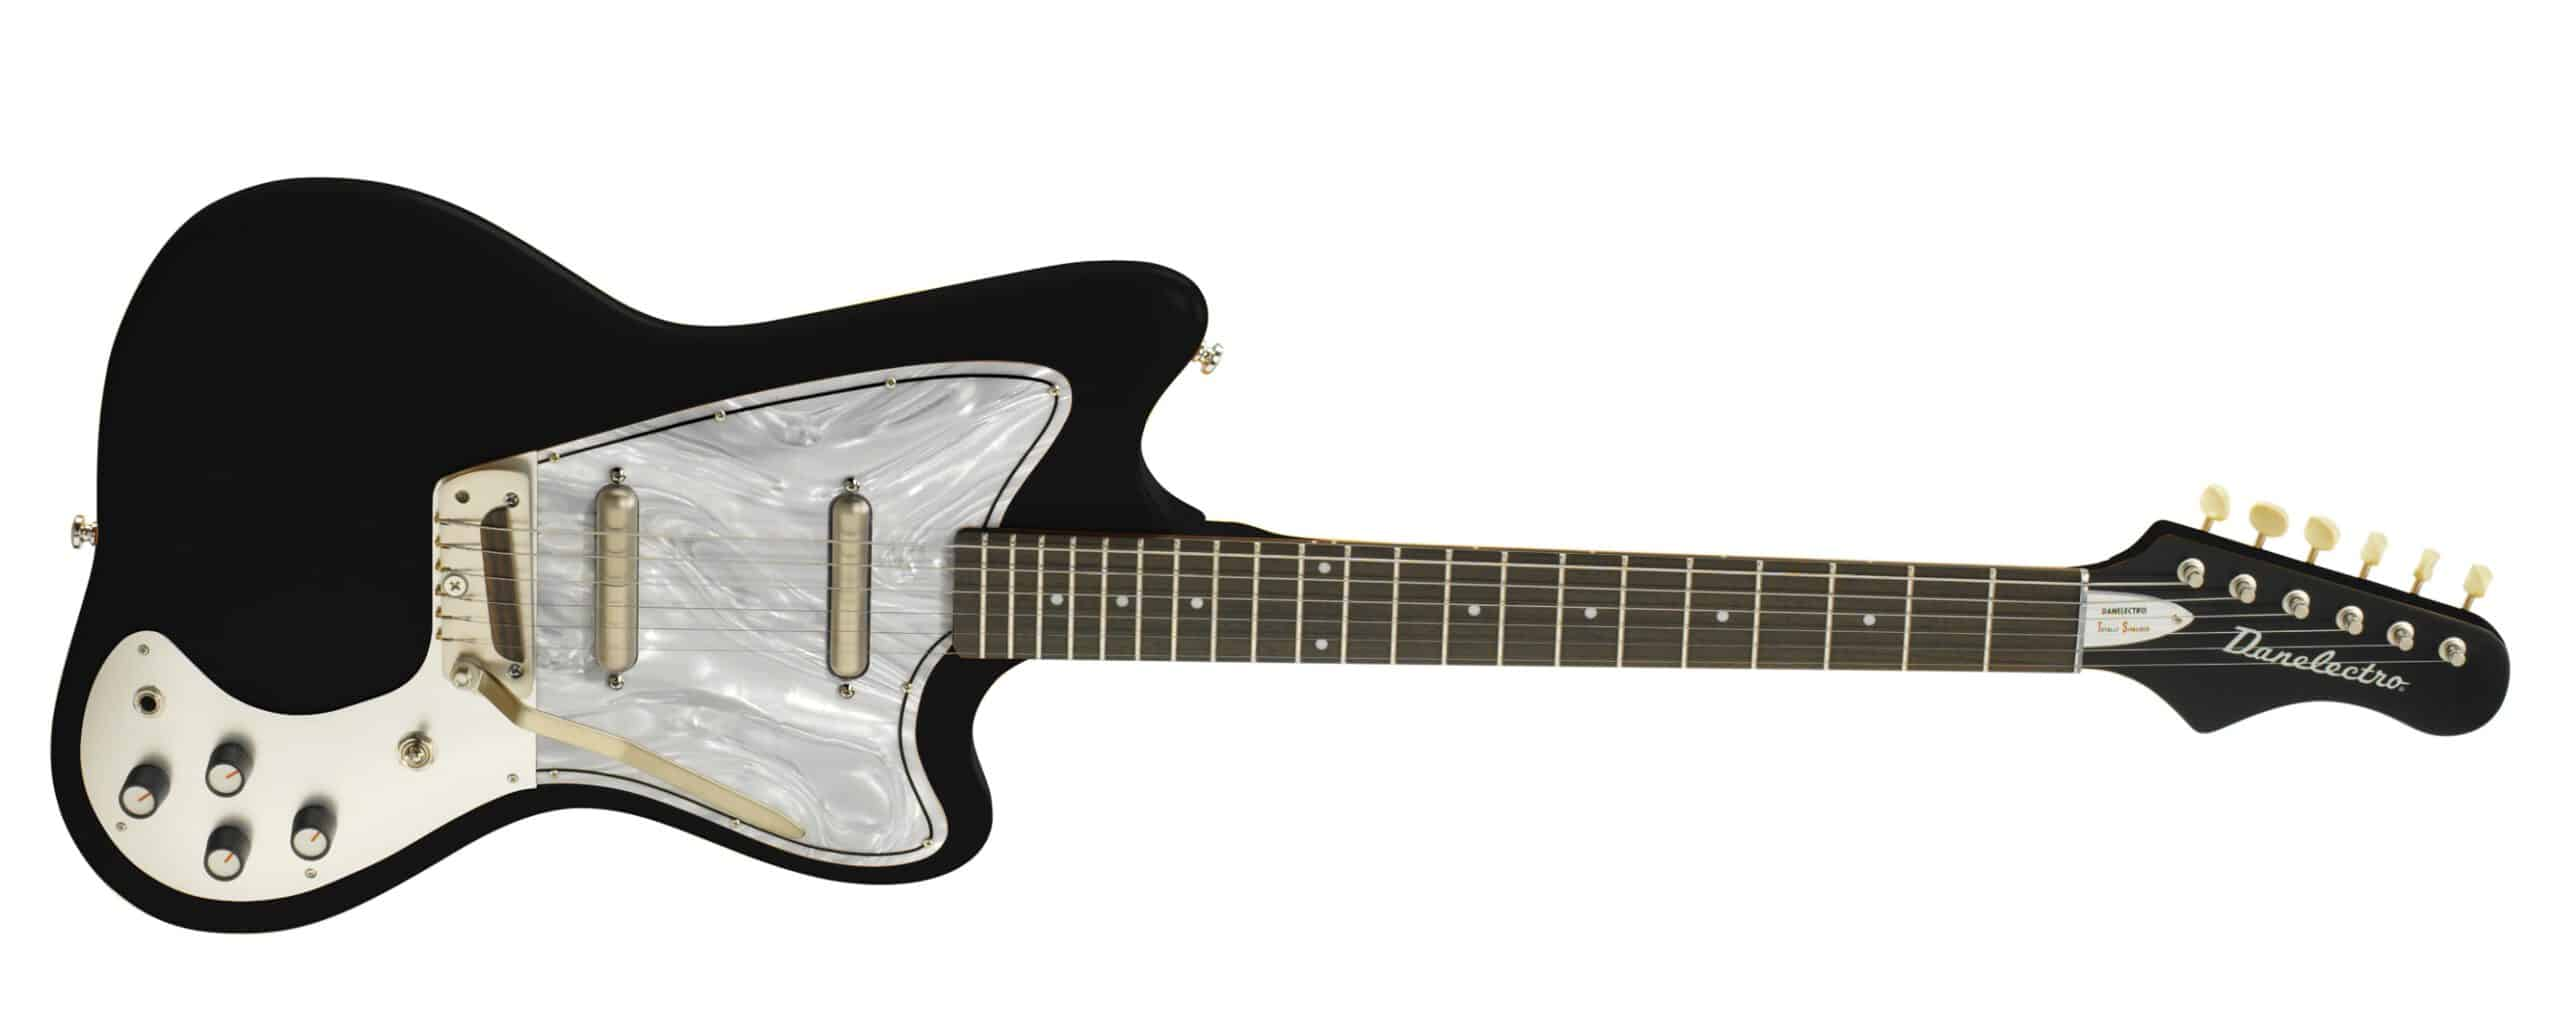 Remembering Vintage Danelectro Guitars